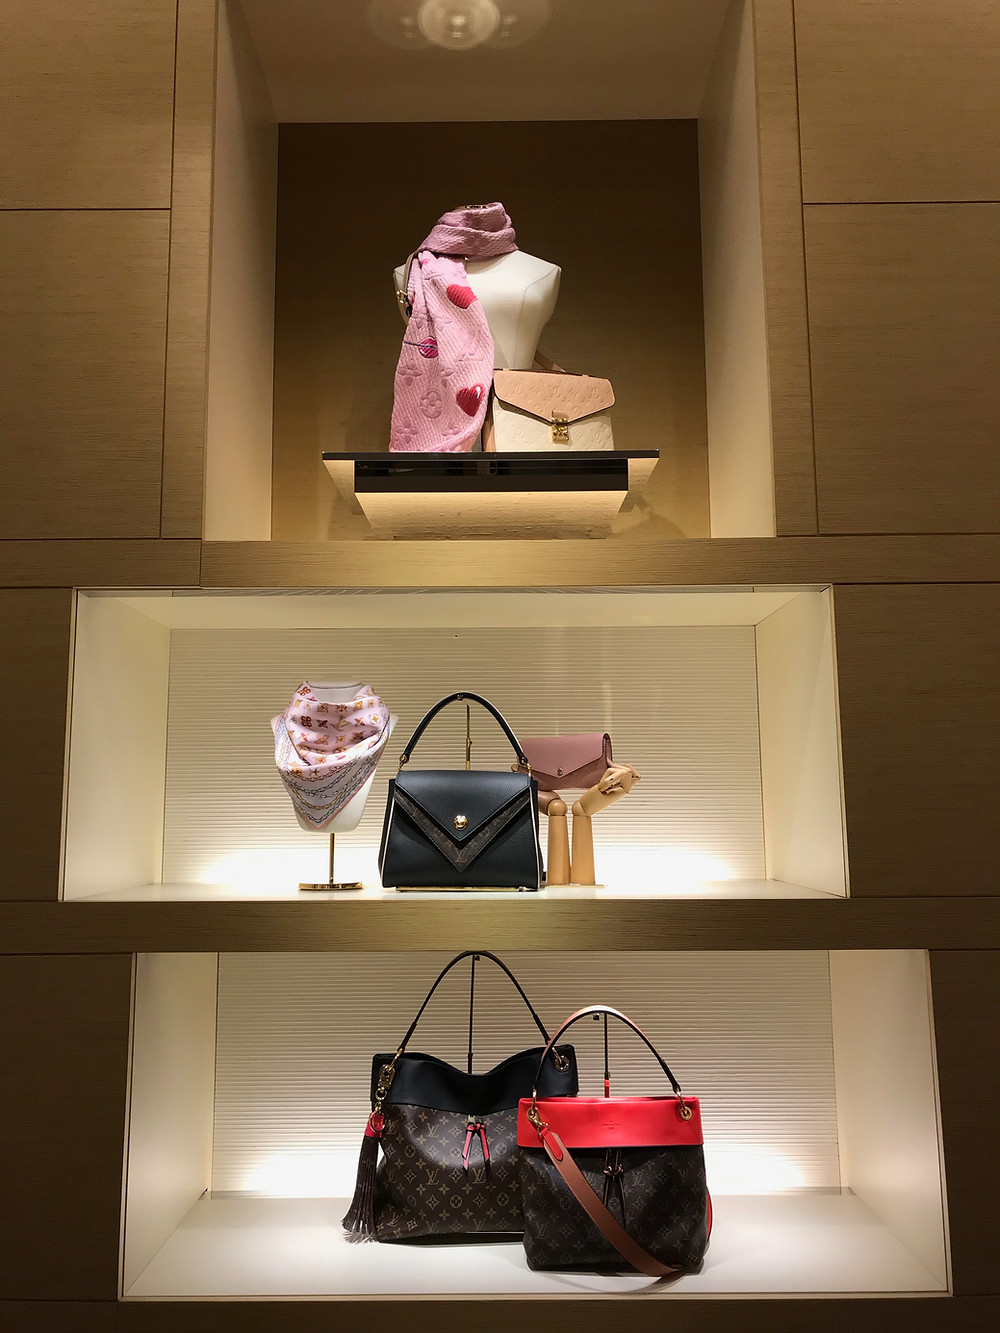 Louis Vuitton BOUTIQUE, LOUIS VUITTON BAGS, DESIGNER HANDBAGS, Louis Vuitton STORE DISPLAY